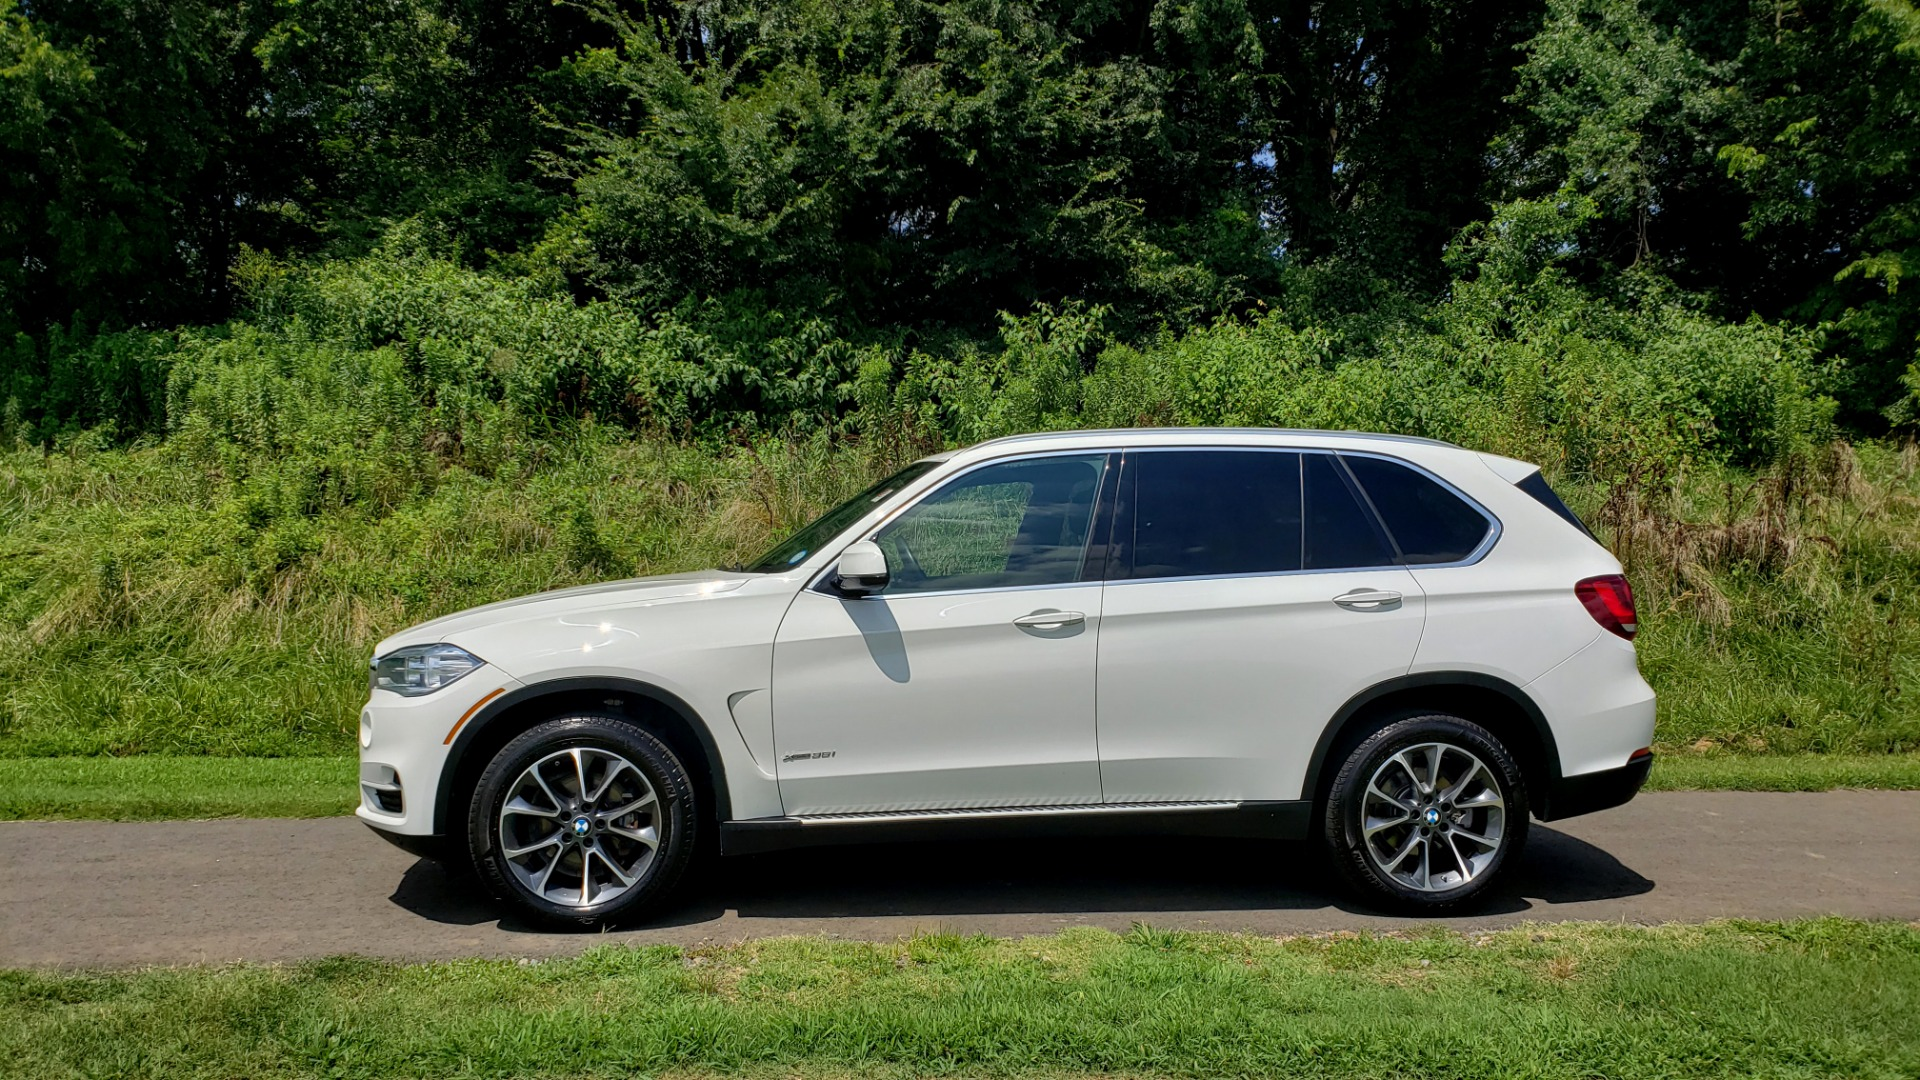 Used 2017 BMW X5 XDRIVE35I / NAV / SUNROOF / RUNNING BOARDS / REARVIEW for sale $33,995 at Formula Imports in Charlotte NC 28227 2